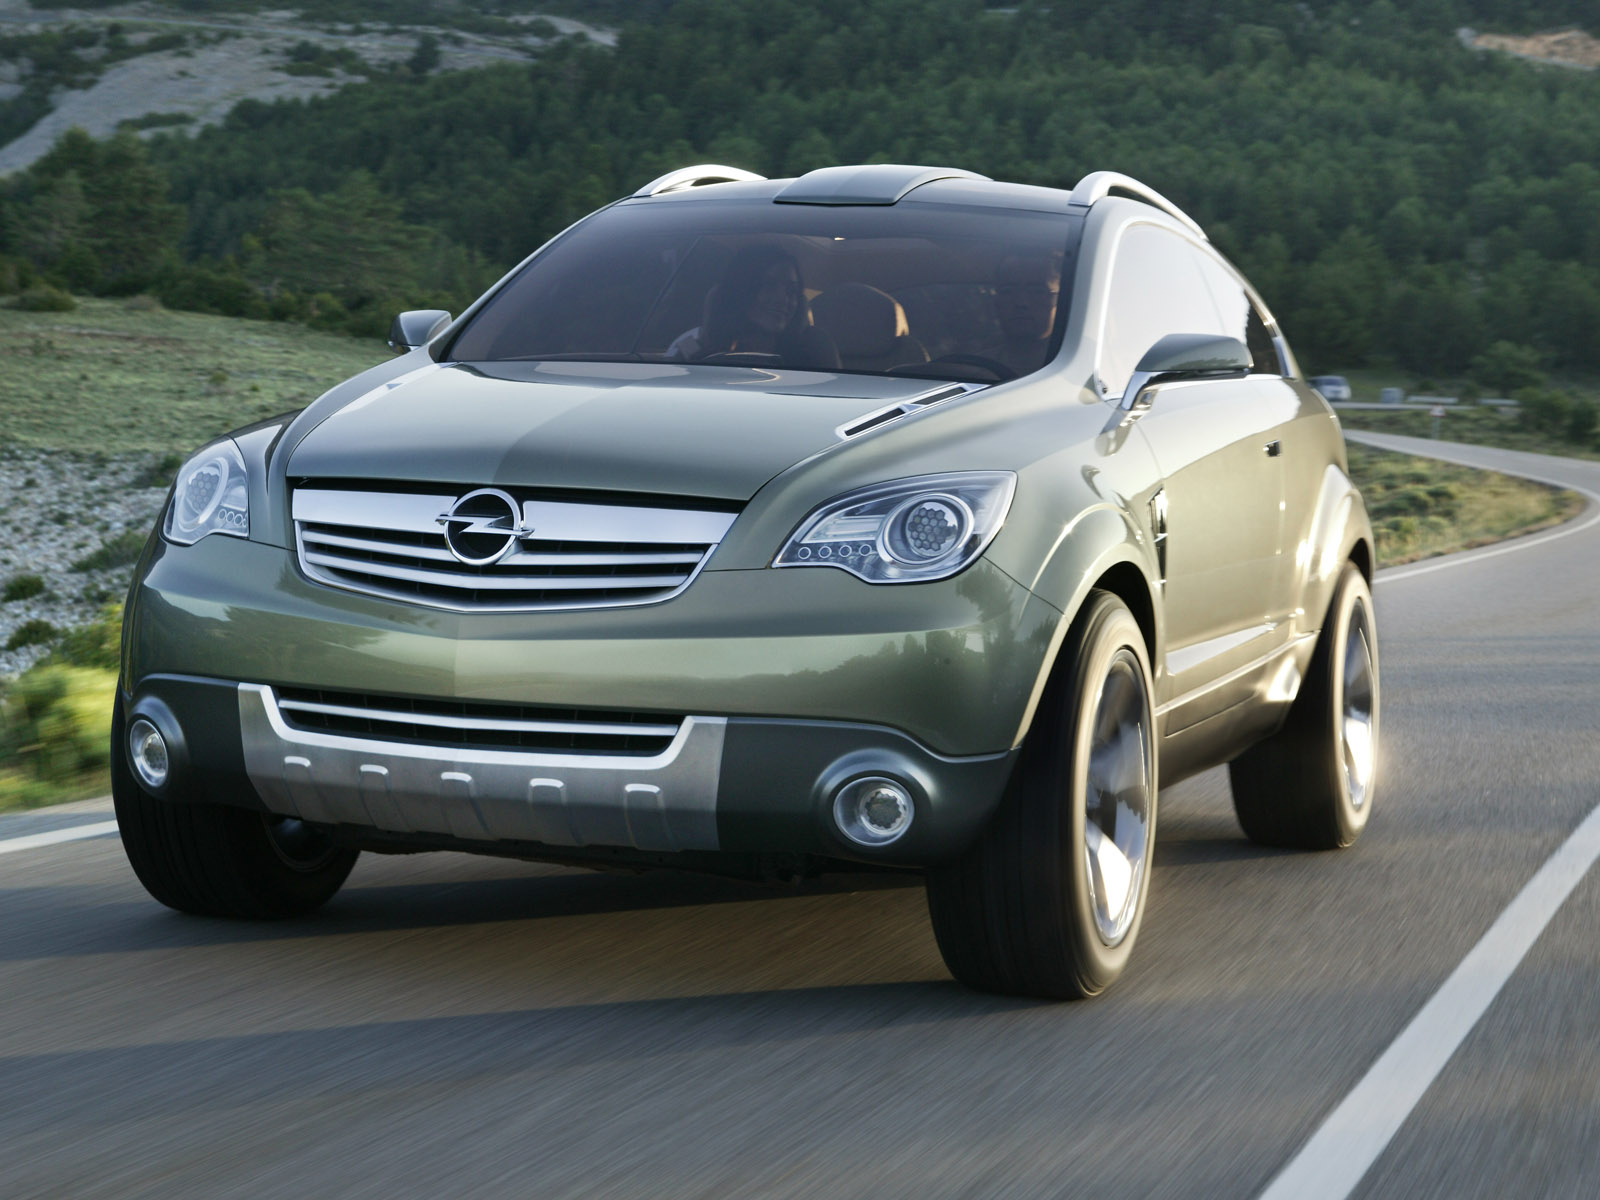 opel antara concept 2005 opel antara concept 2005 photo 02 car in pictures car photo gallery. Black Bedroom Furniture Sets. Home Design Ideas